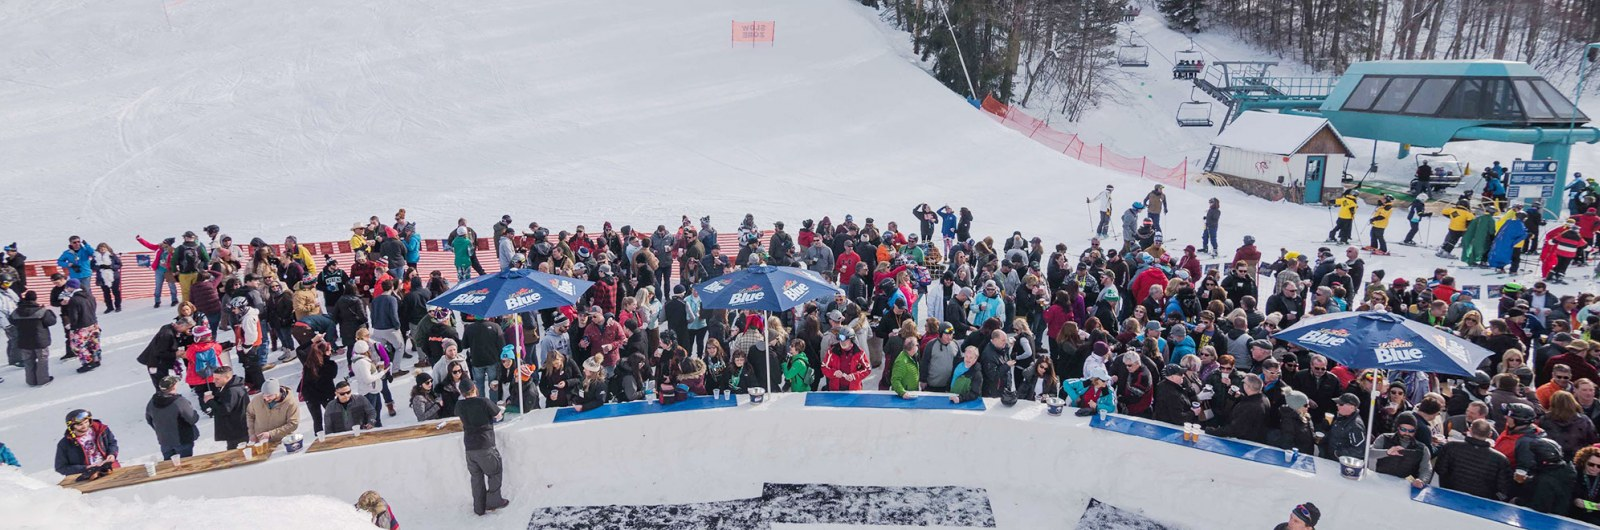 Spectators watching ski and snowboard event at base of mountain